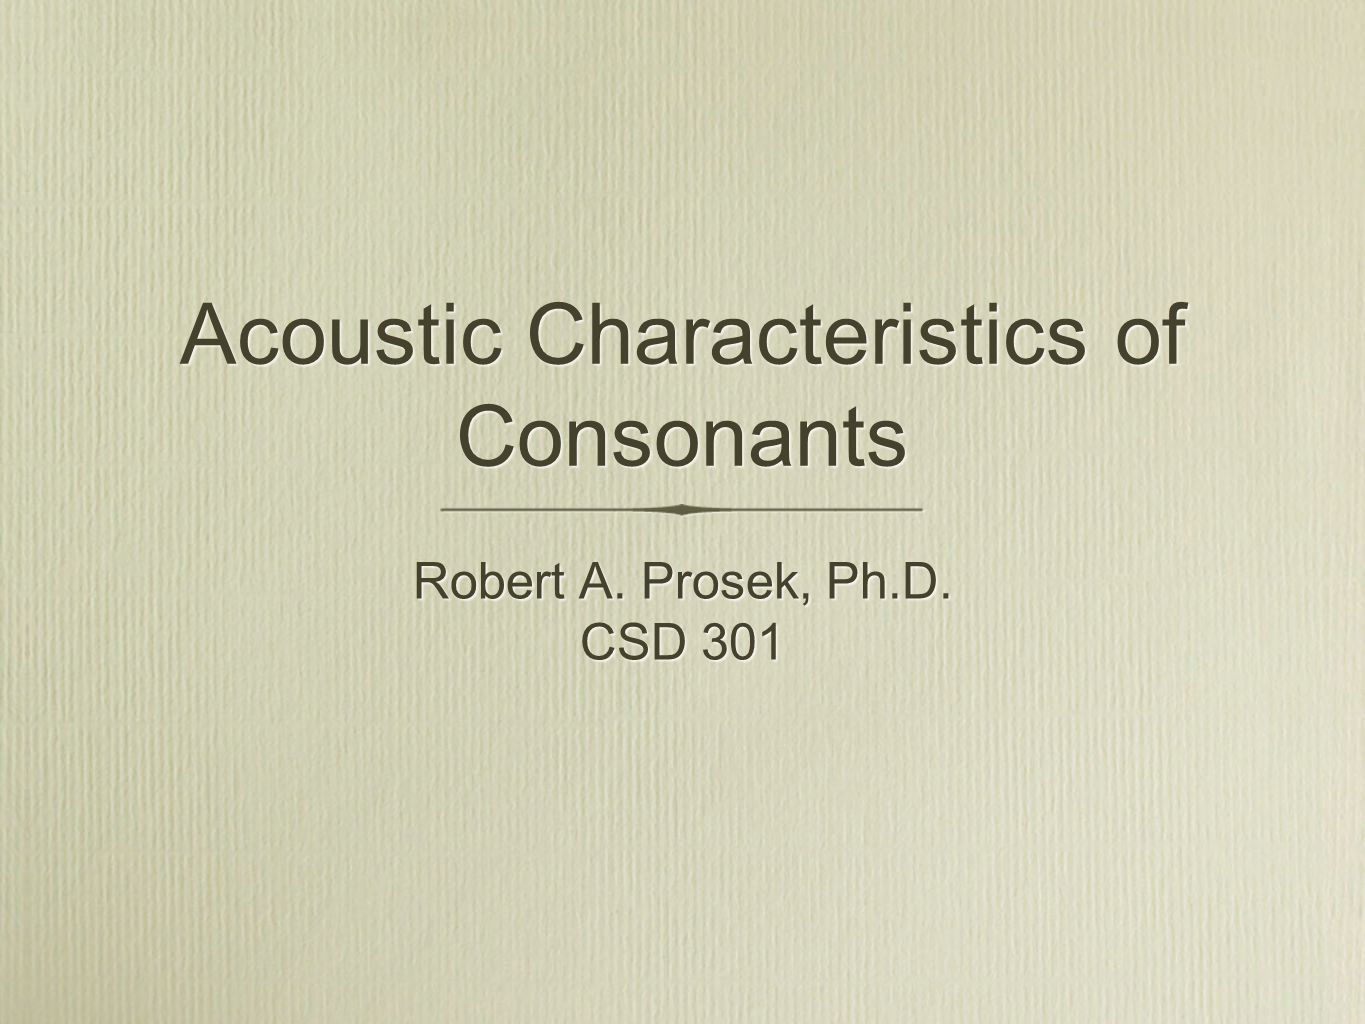 Consonants Consonant articulations are more complex than vowel articulations consonants are usually described in groups according to their significant acoustic and articulatory properties stops fricatives affricates nasals glides liquids Consonant articulations are more complex than vowel articulations consonants are usually described in groups according to their significant acoustic and articulatory properties stops fricatives affricates nasals glides liquids